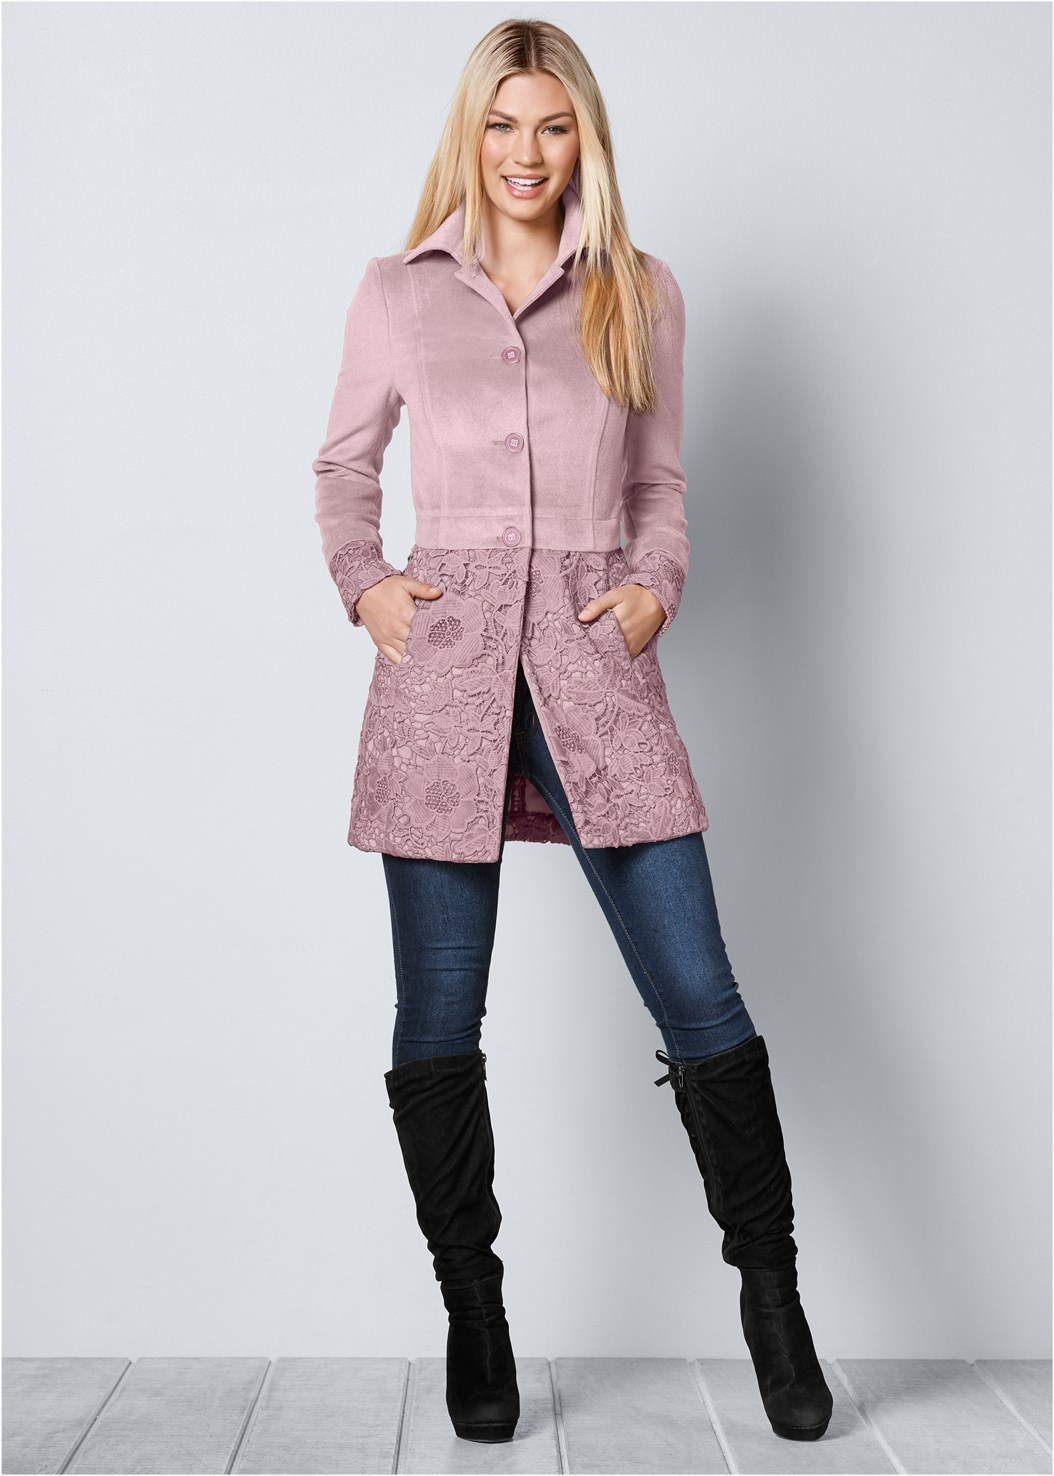 Lace Detail Coat,Mid Rise Color Skinny Jeans,Tie Back Boots